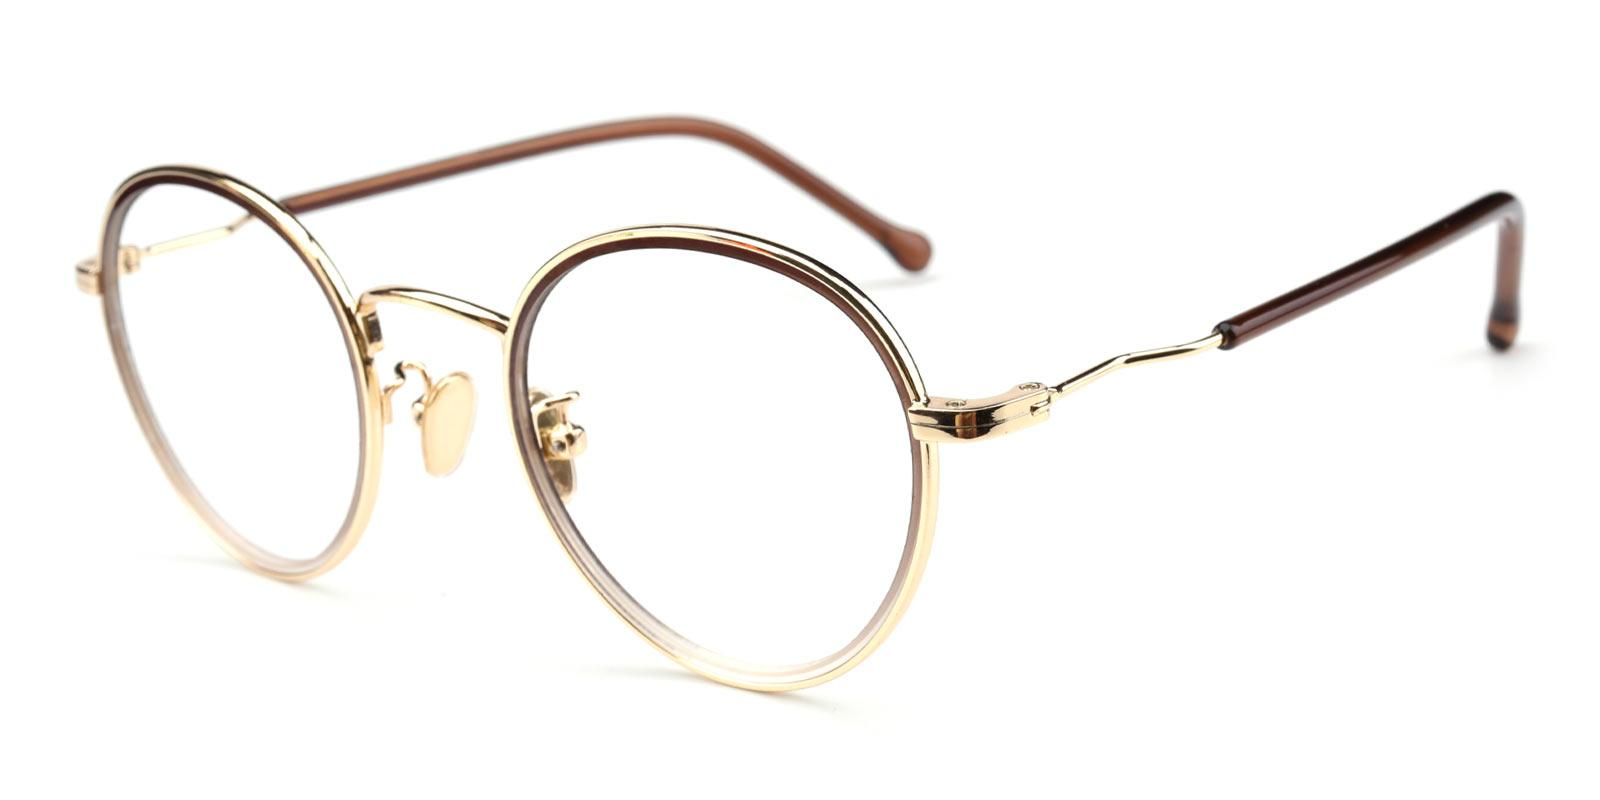 Jenny-Brown-Round-Combination-Eyeglasses-additional1